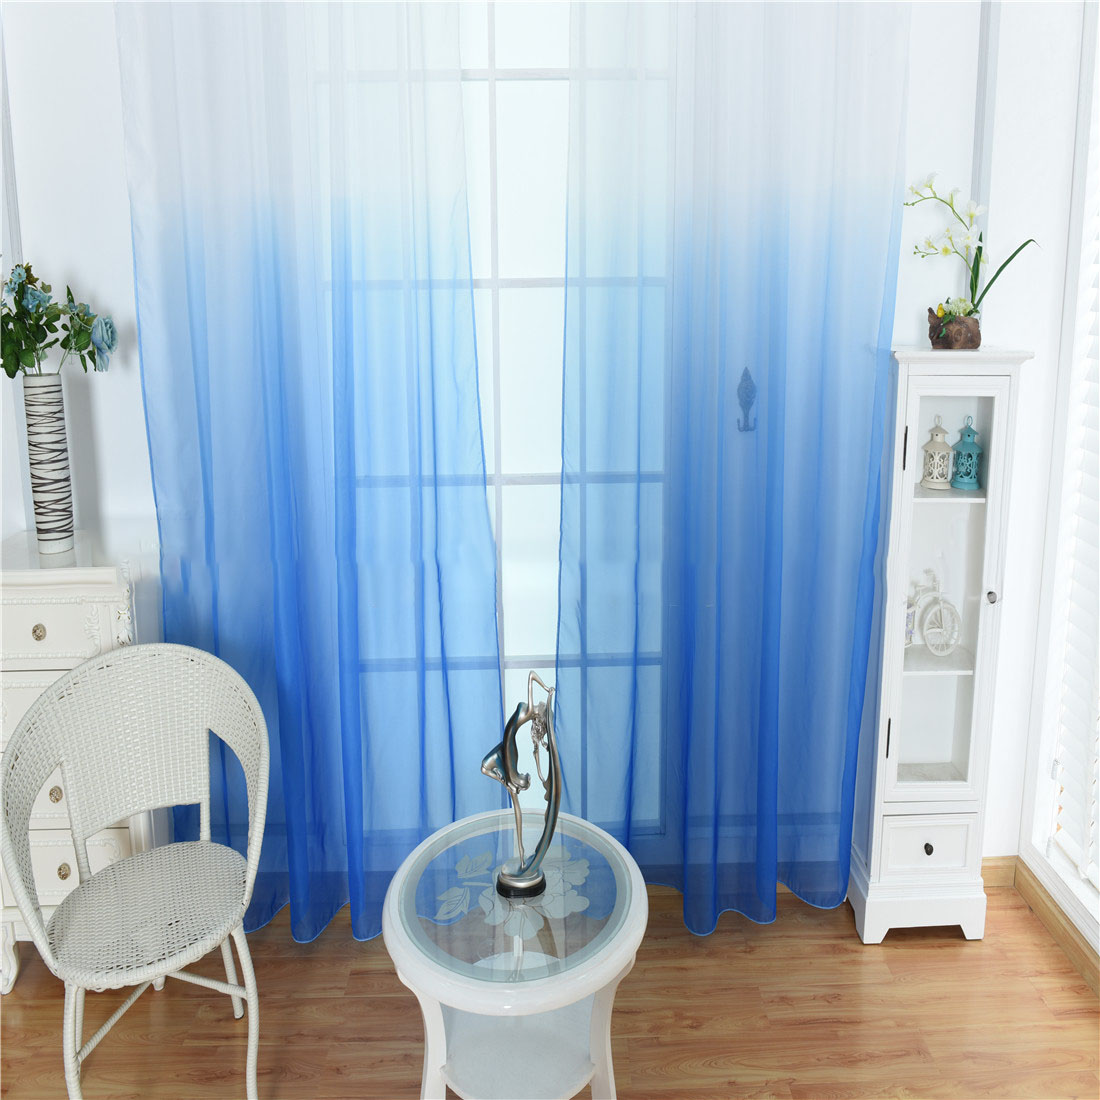 Honana 100x200cm Curtains Color Gradient Terilun Tulle Window Screen Sheer Panels Romantic Wedding Decor Curtain For Living Room Bedroom